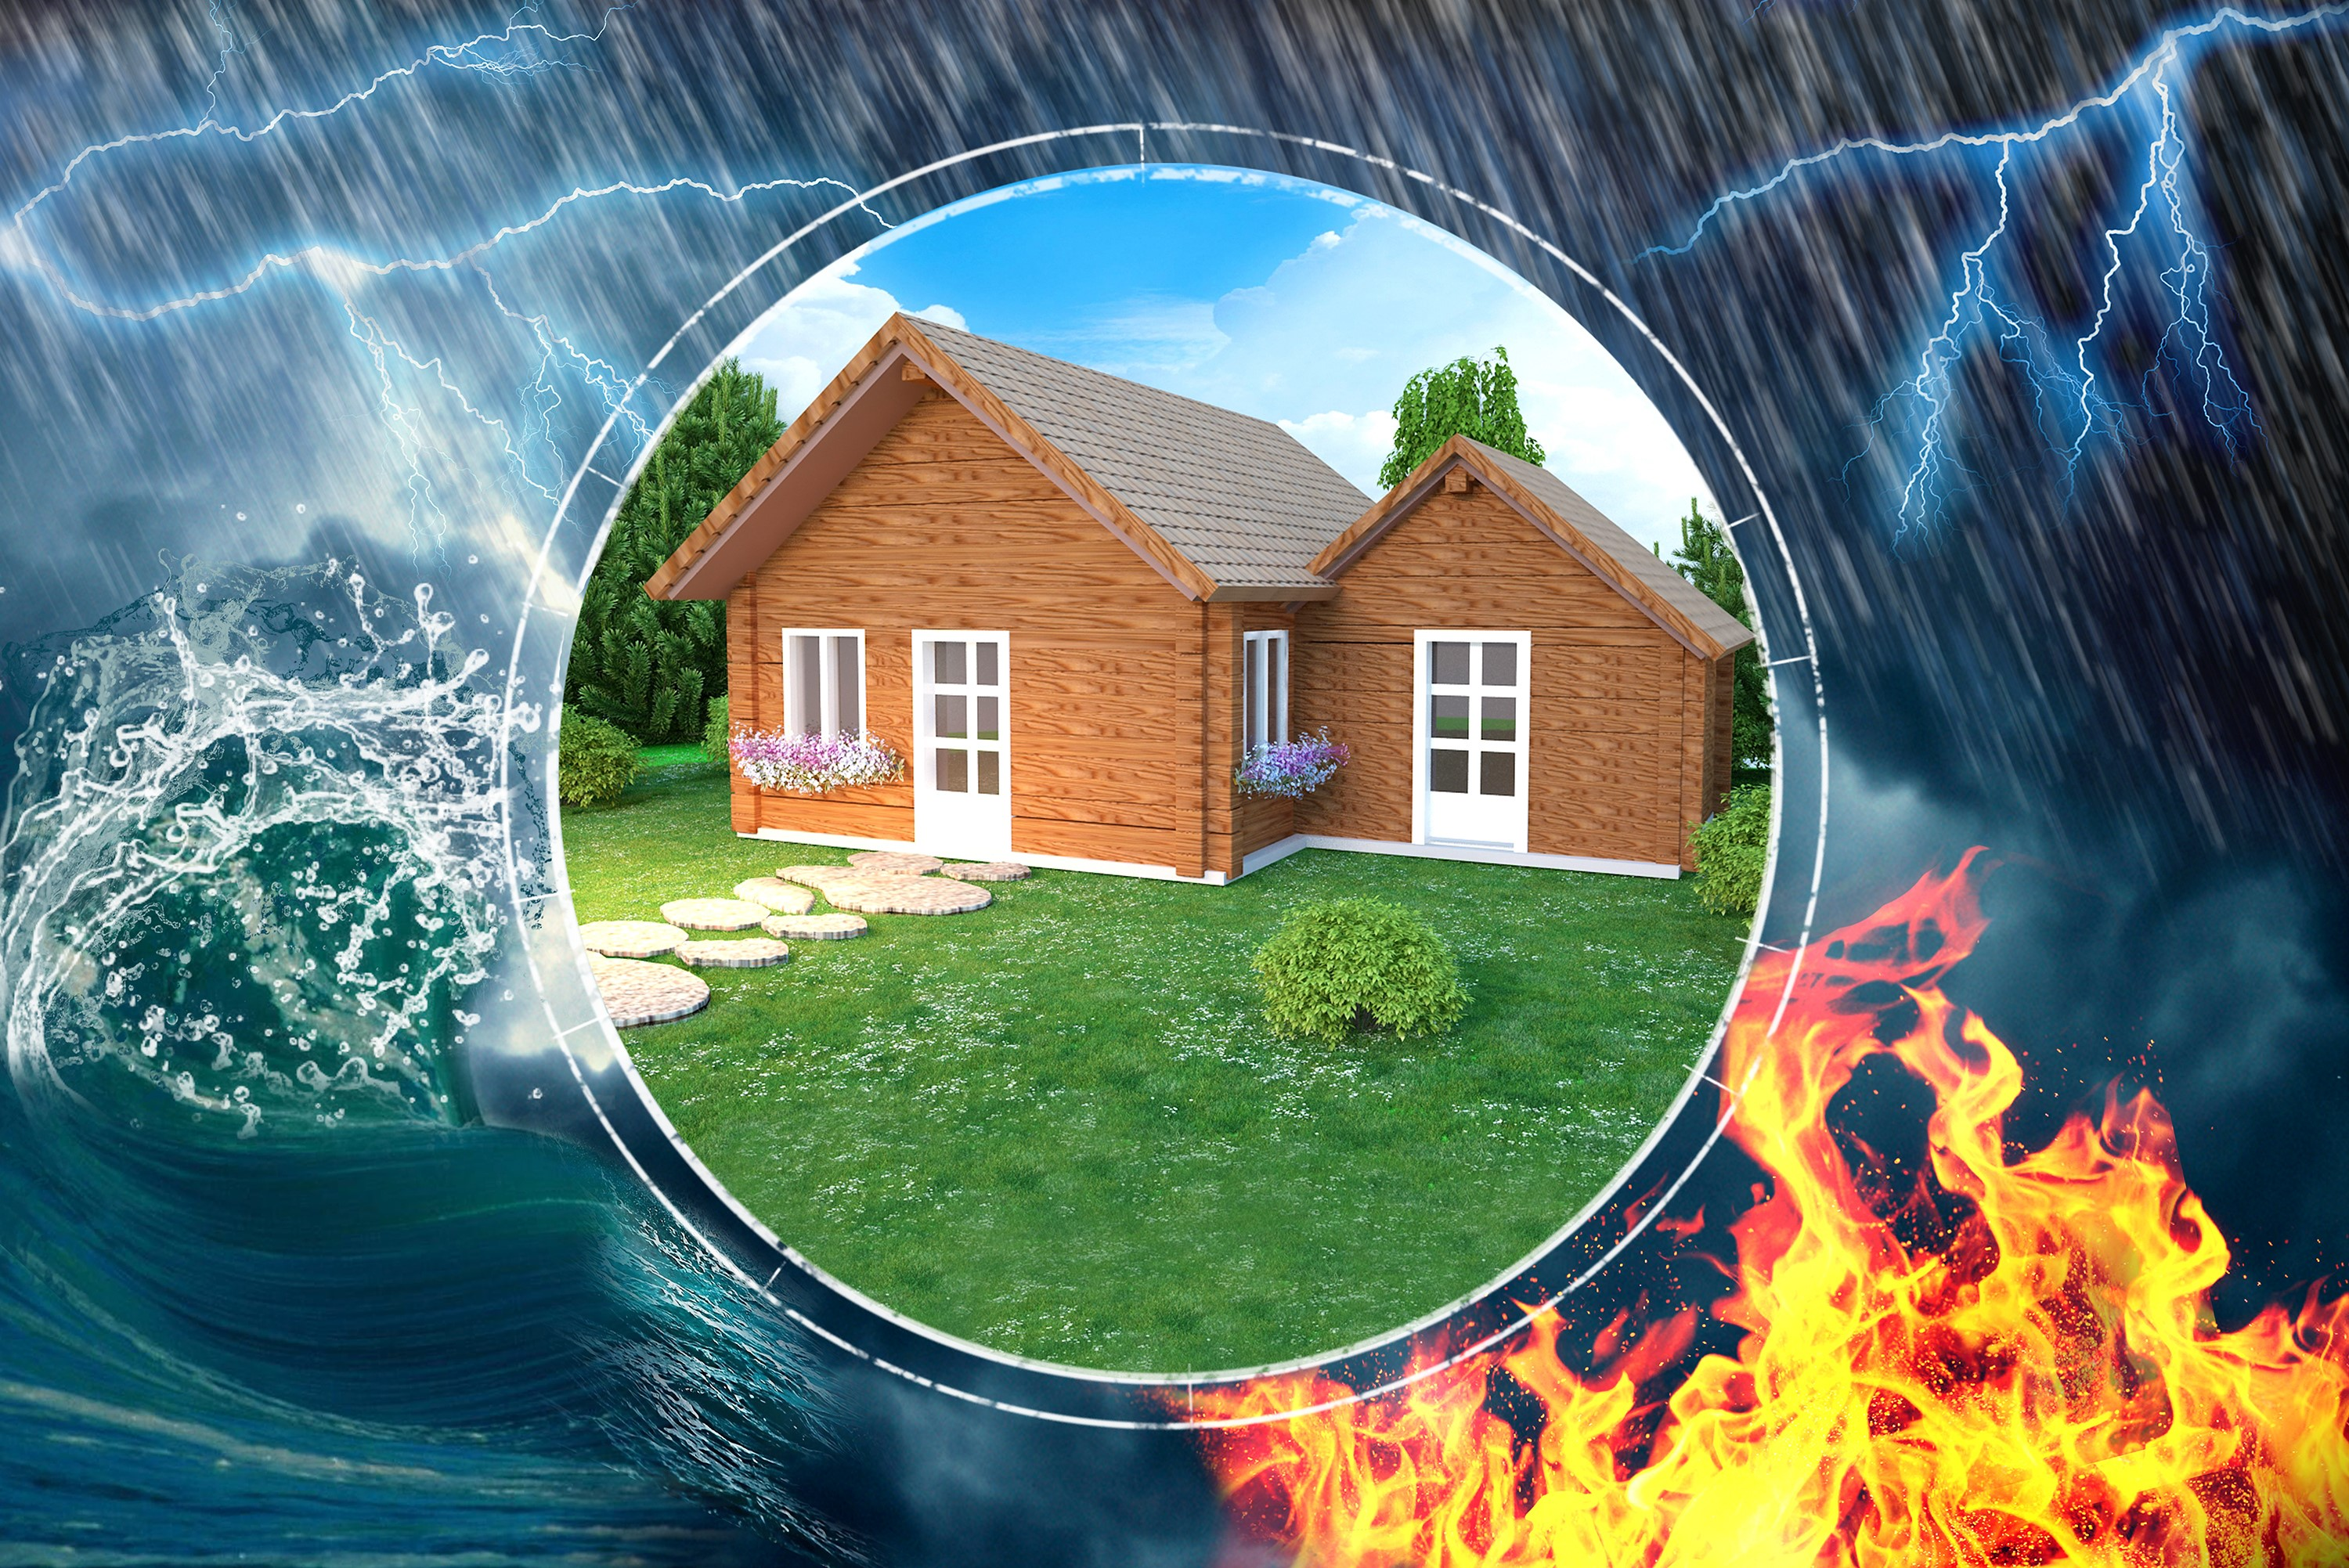 How Climate Change May Impact Your Home Insurance on avanteinsurance.com